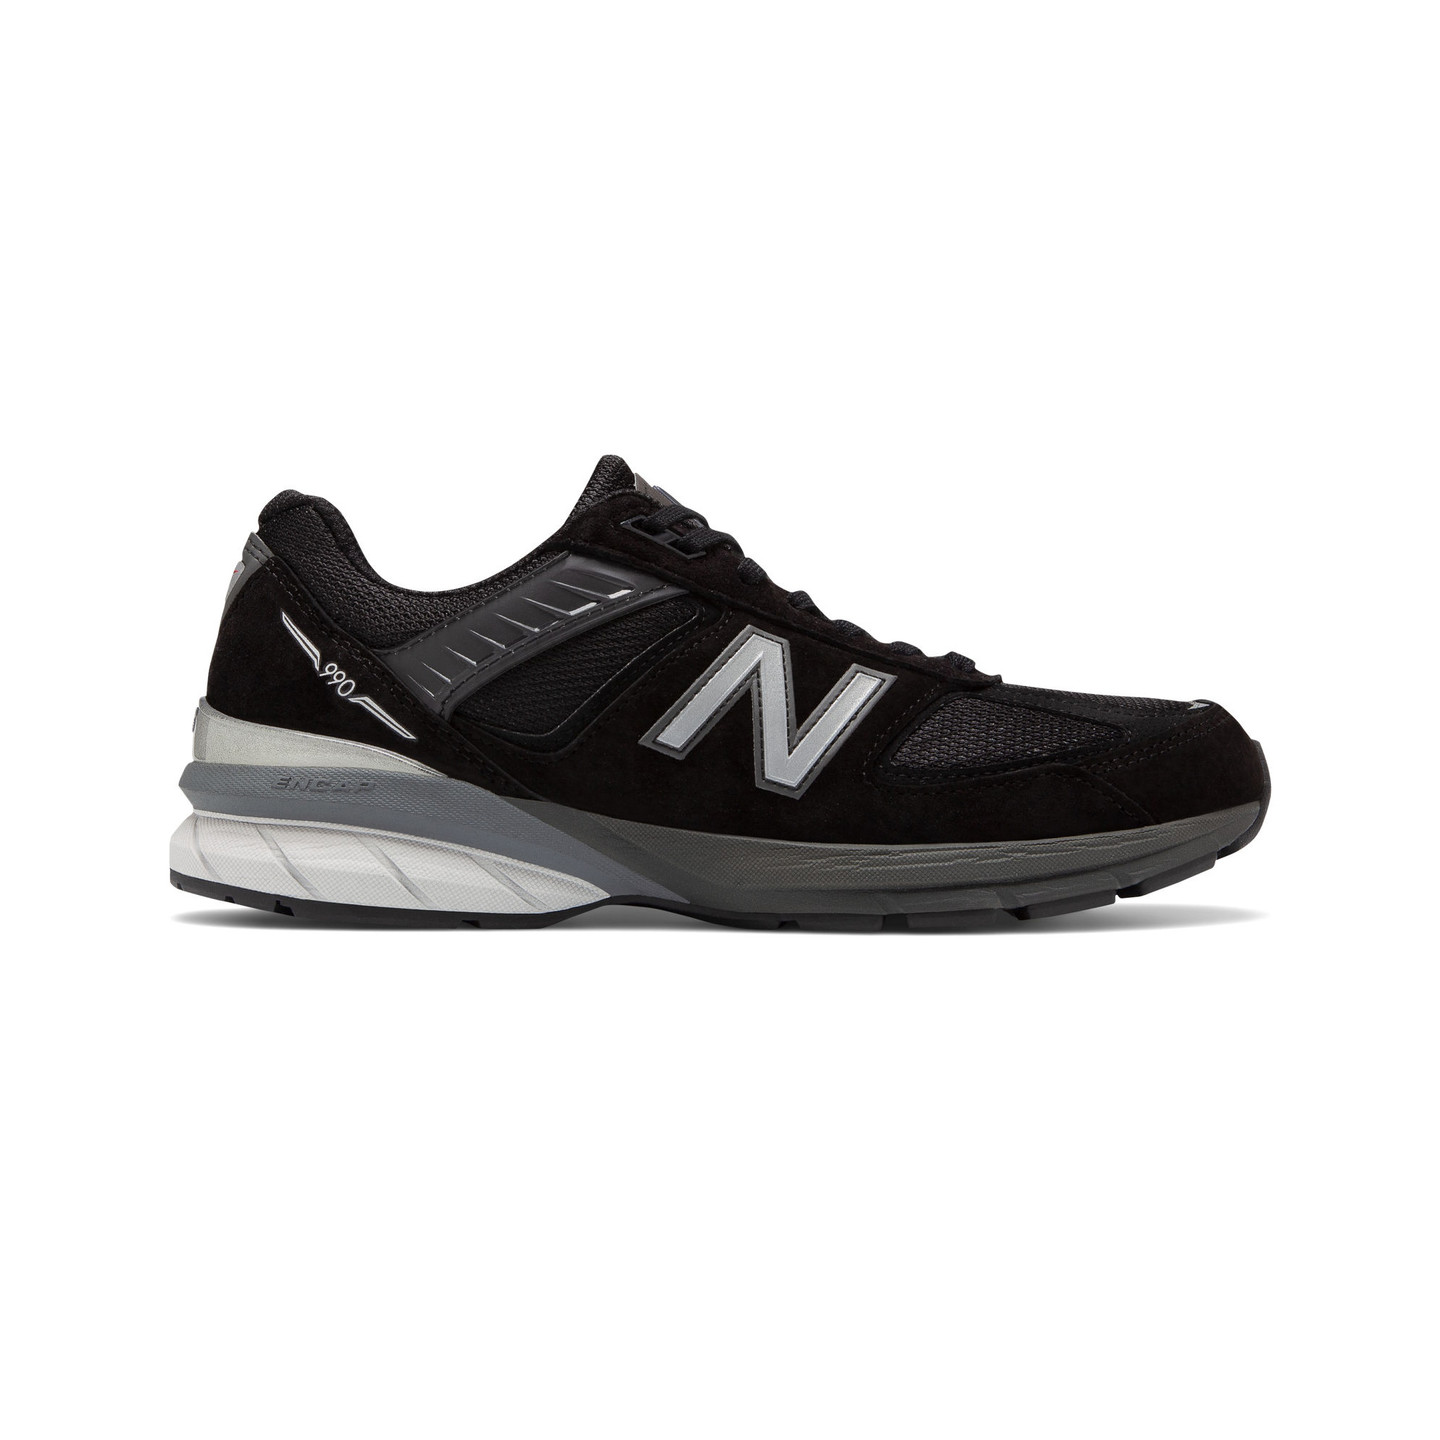 New Balance M990 V5 - Made in USA Black / Grey M990BK5